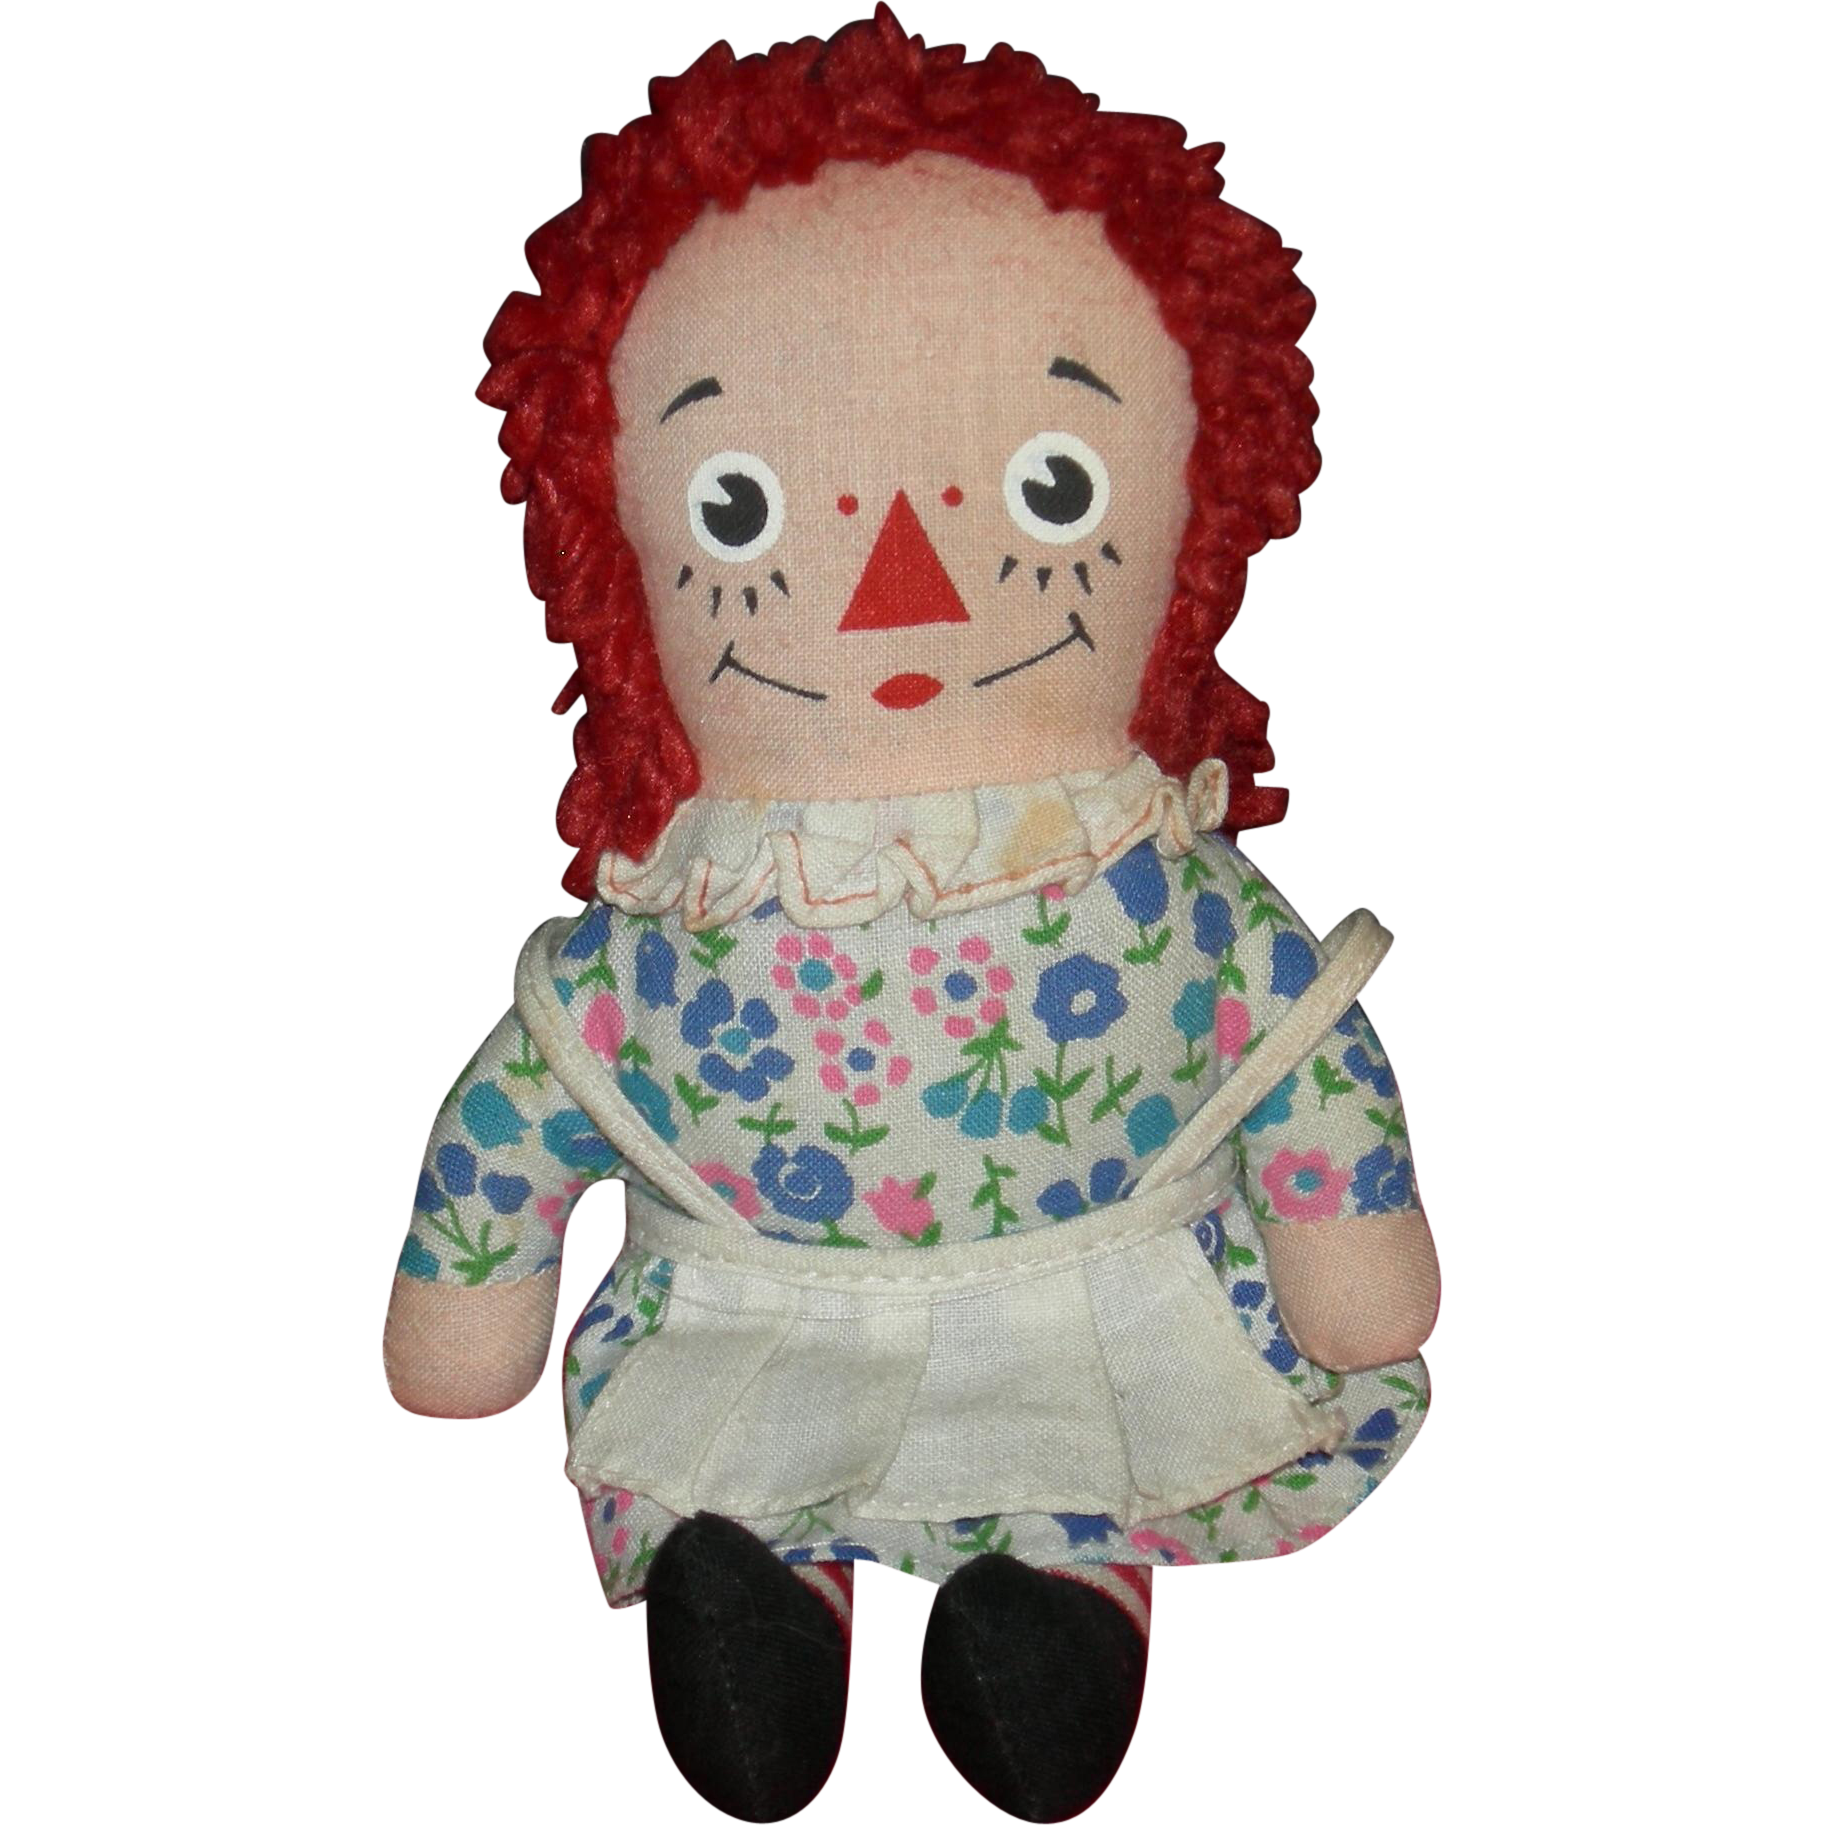 "Tiny 7"" - RAGGEDY ANN - Knickerbocker - Vintage Doll - For Your Dolly To Hold & To Love!!"